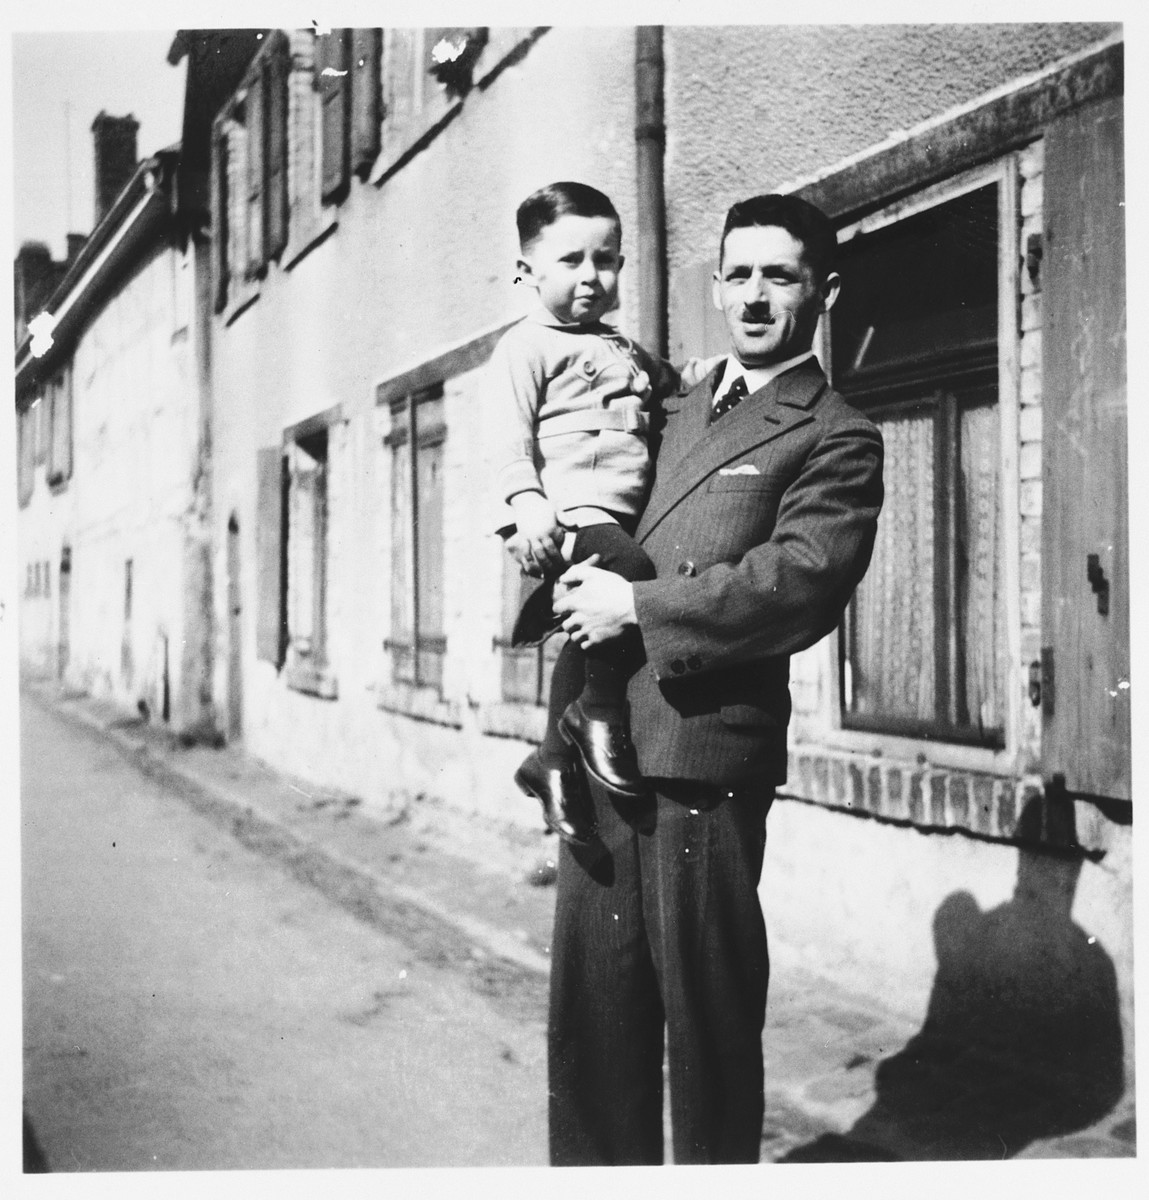 Hugo Odenheimer holds his young son Hugo and poses on a street in Buhl, Germany.